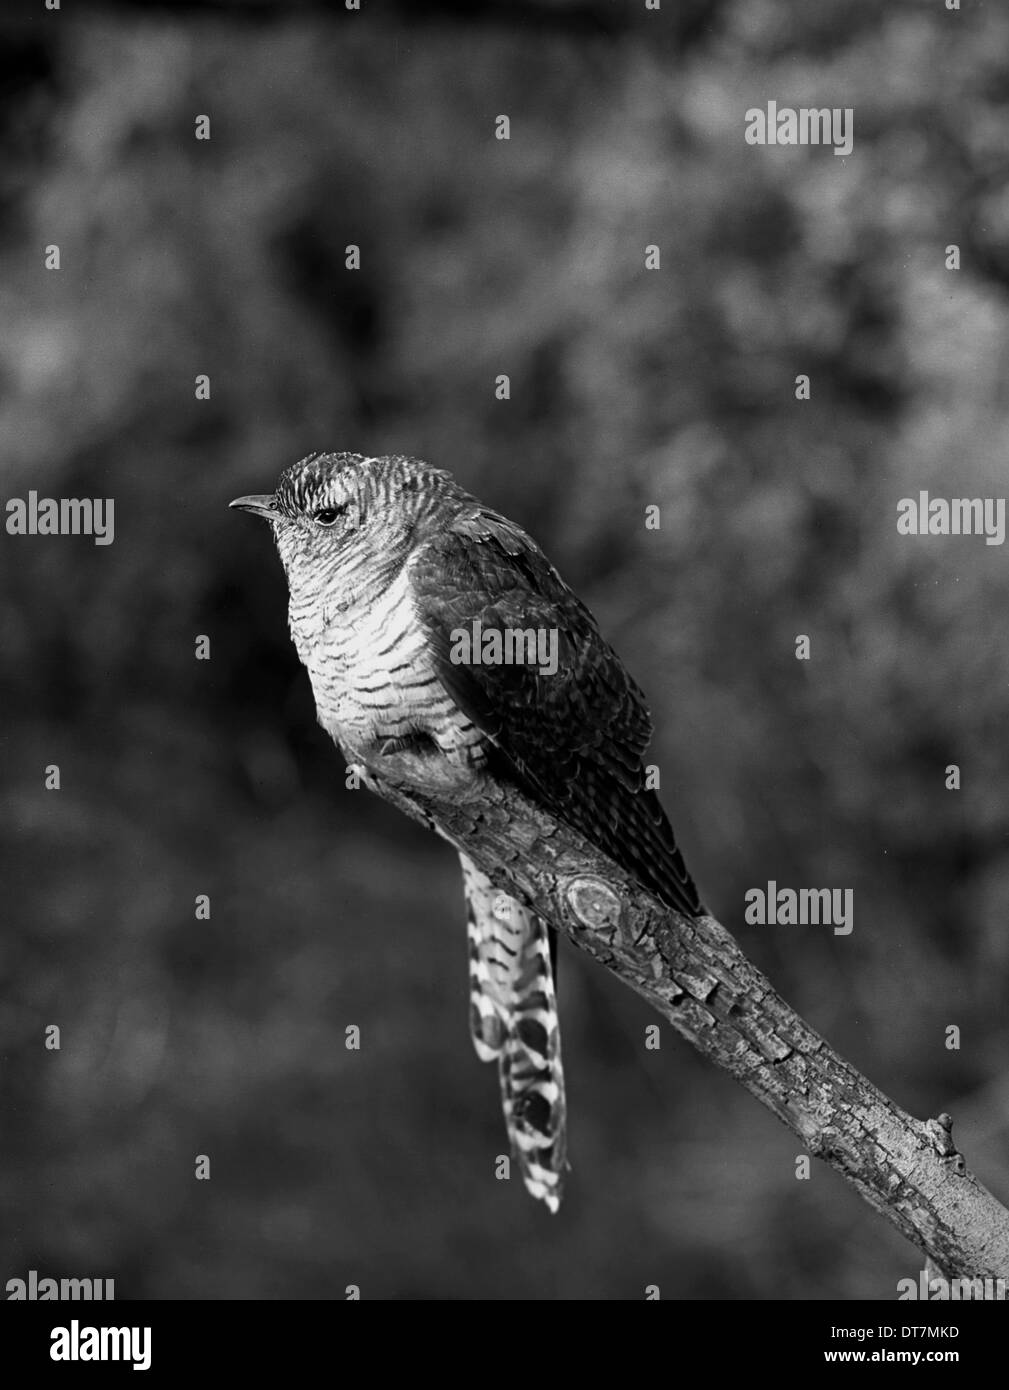 Cuckoo - Ditchling East Sussex.Taken in 1950 by Eric Hosking. - Stock Image